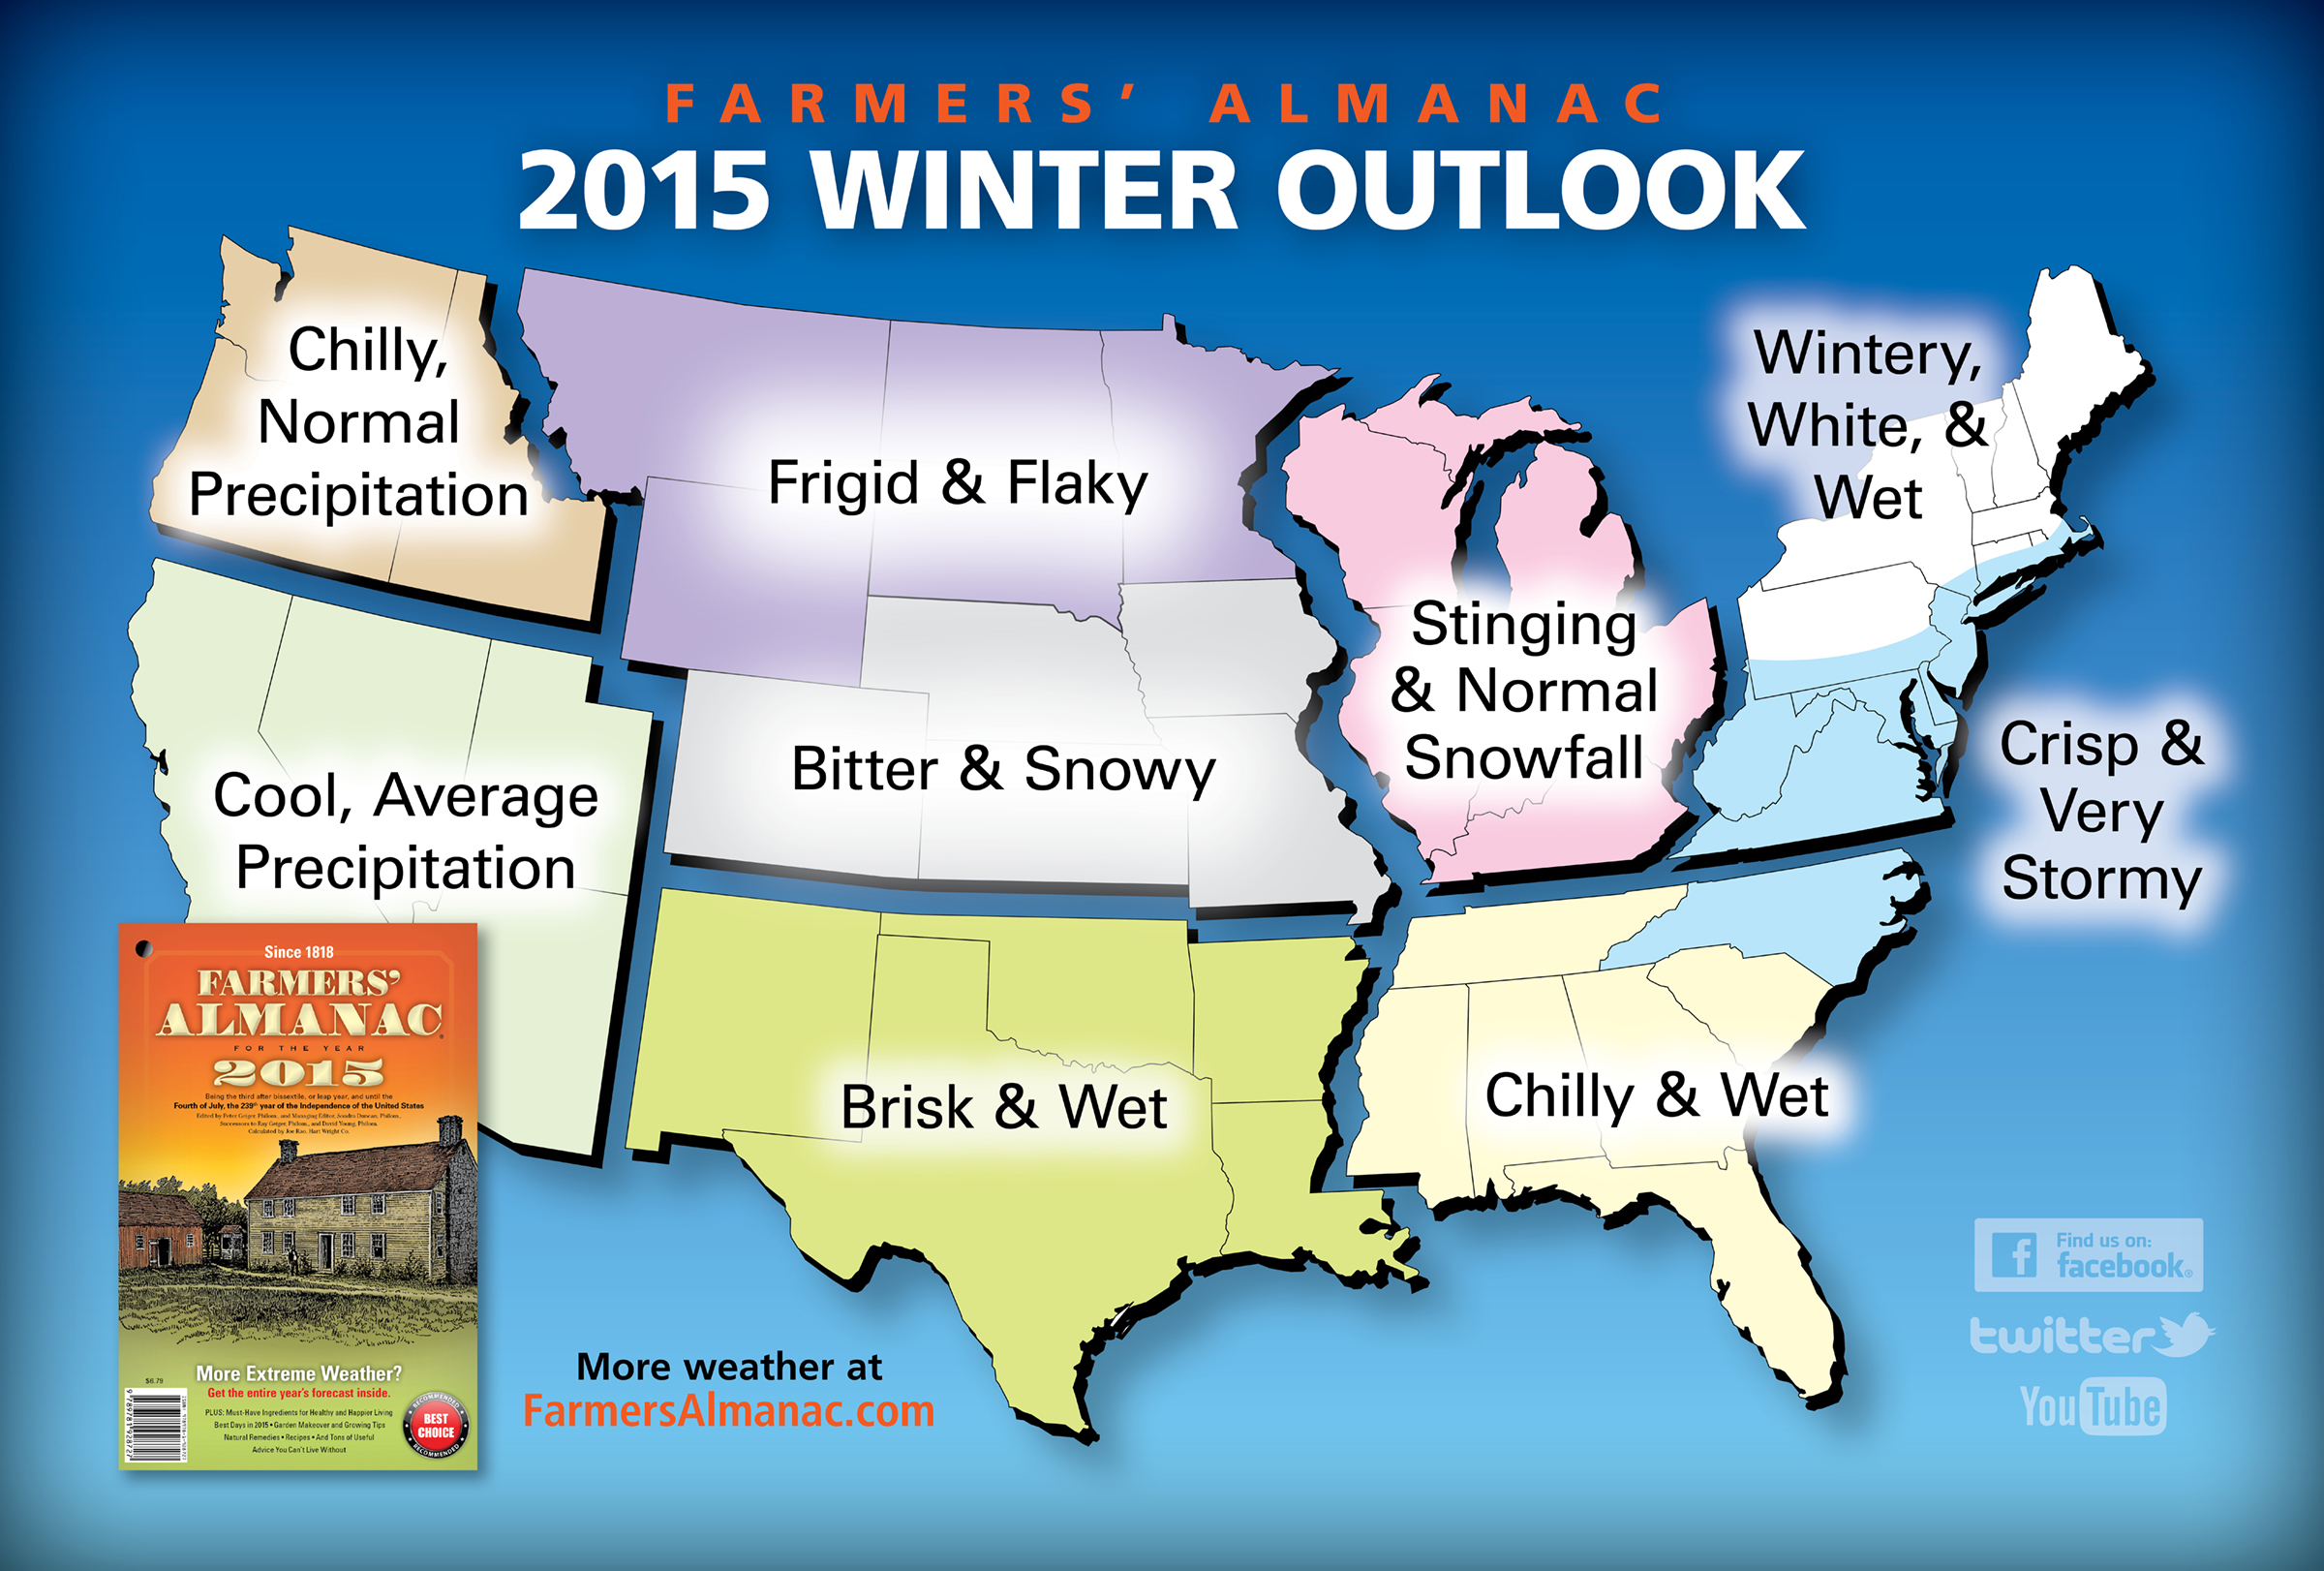 Farmers' Almanac 2015 Winter Outlook